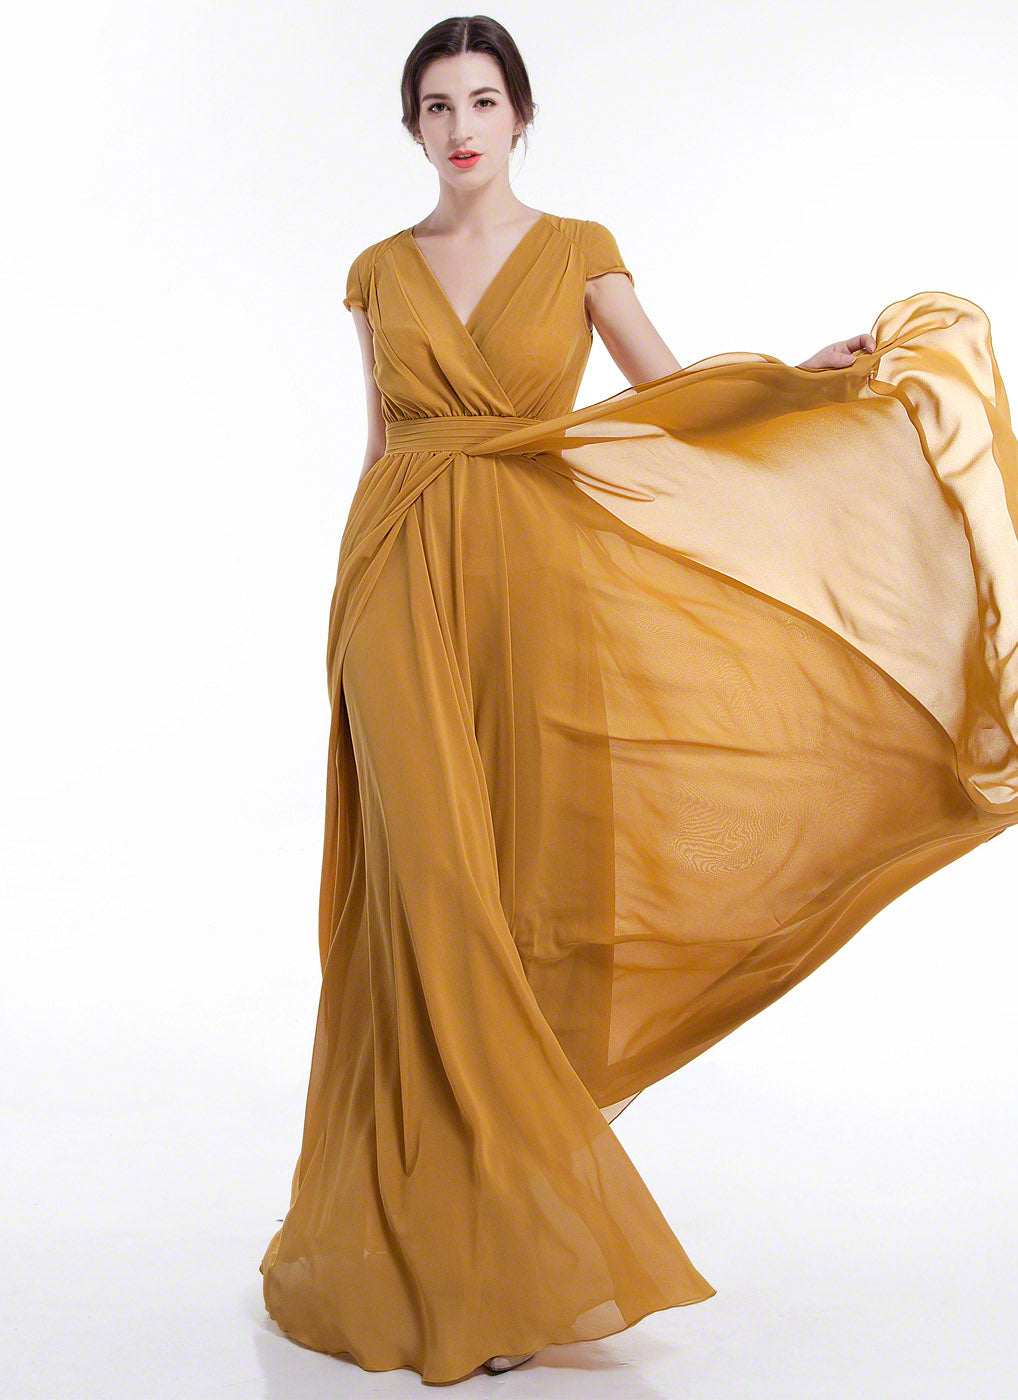 Mustard Yellow Maxi Length Evening Dress With Crossover Bodice And